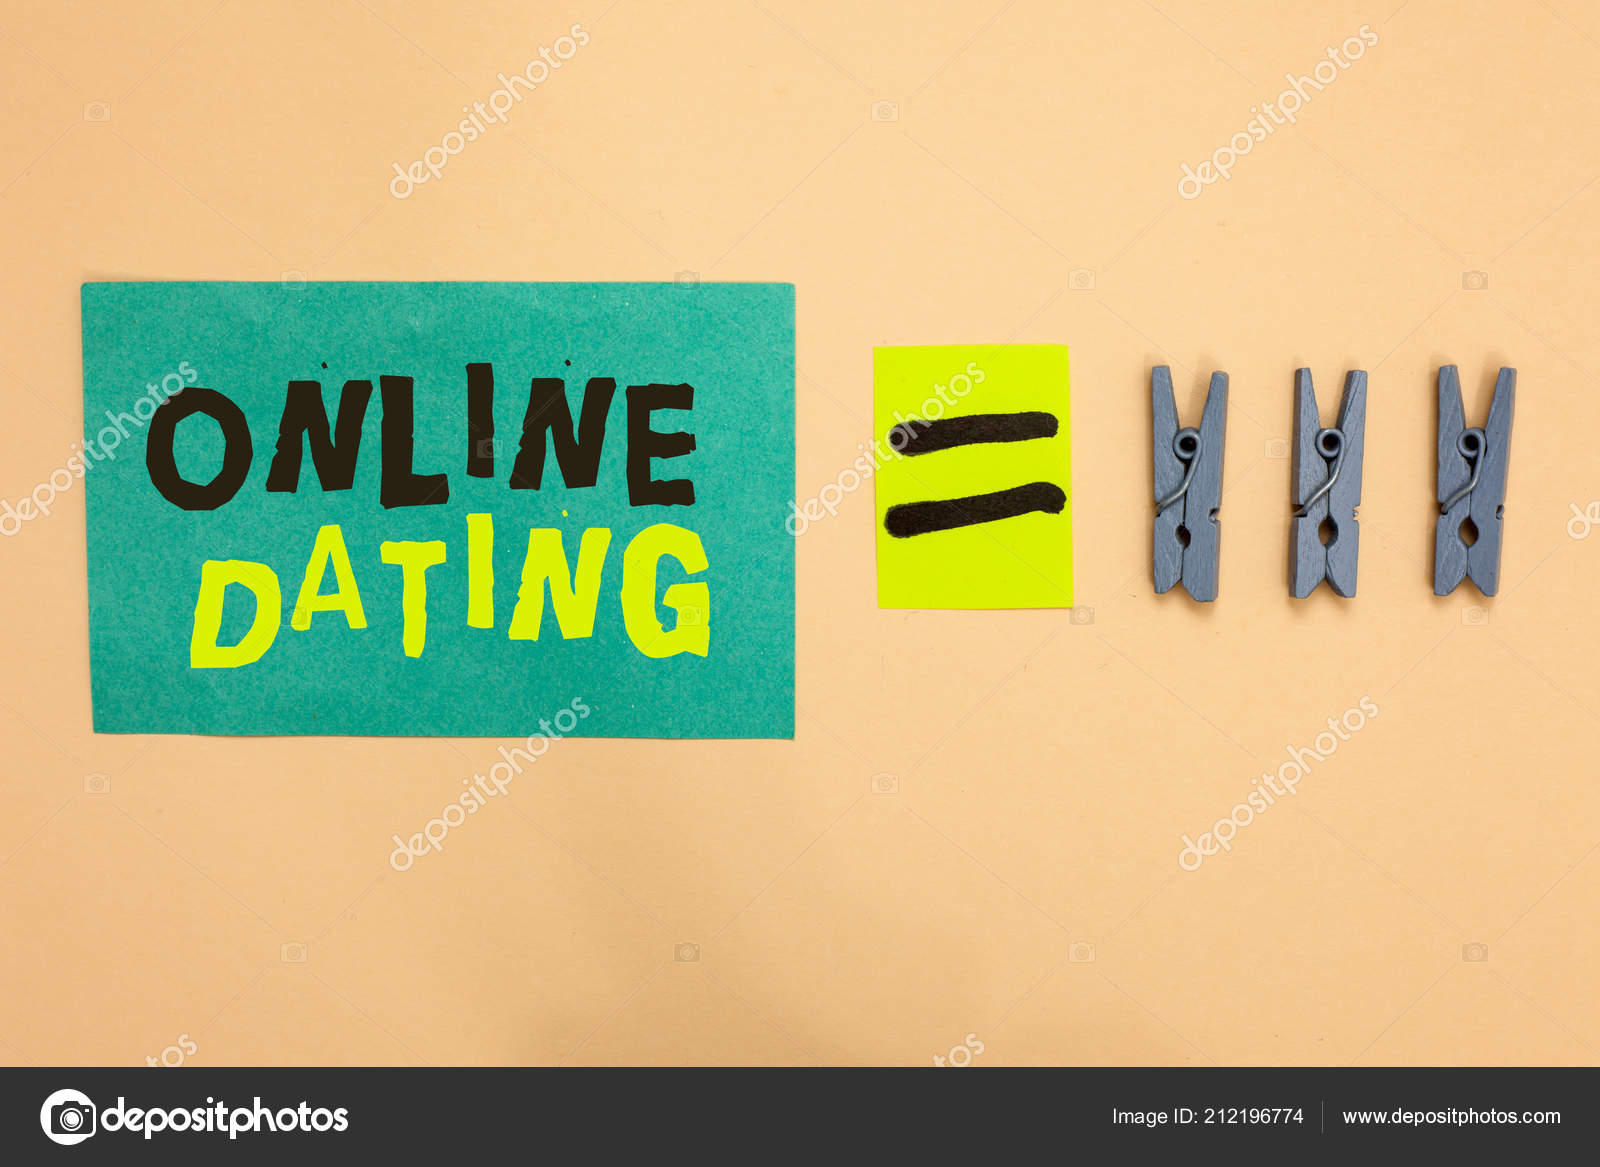 how to send a online dating message